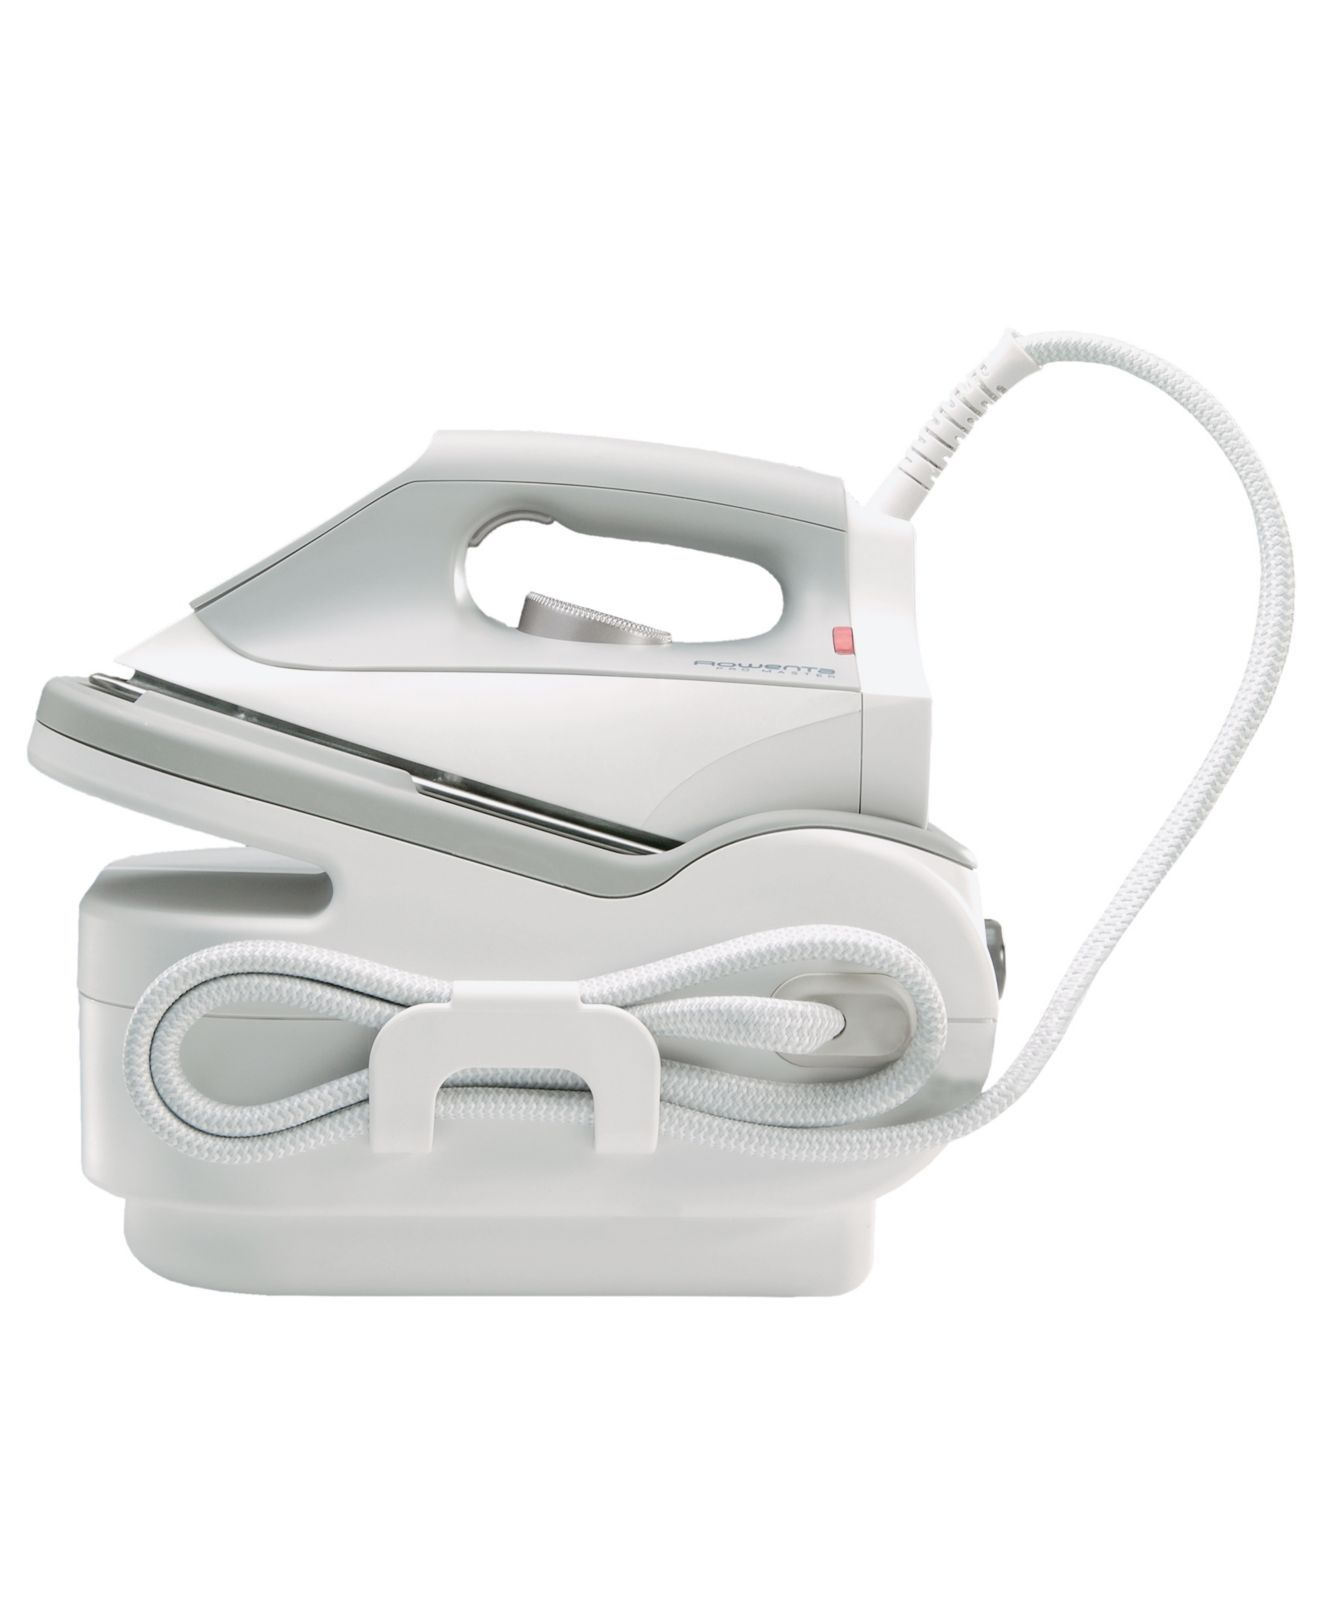 Cleaning rowenta pressure iron and steamer - Rowenta Pressure Iron And Steamer Dg5030 Personal Care For The Home